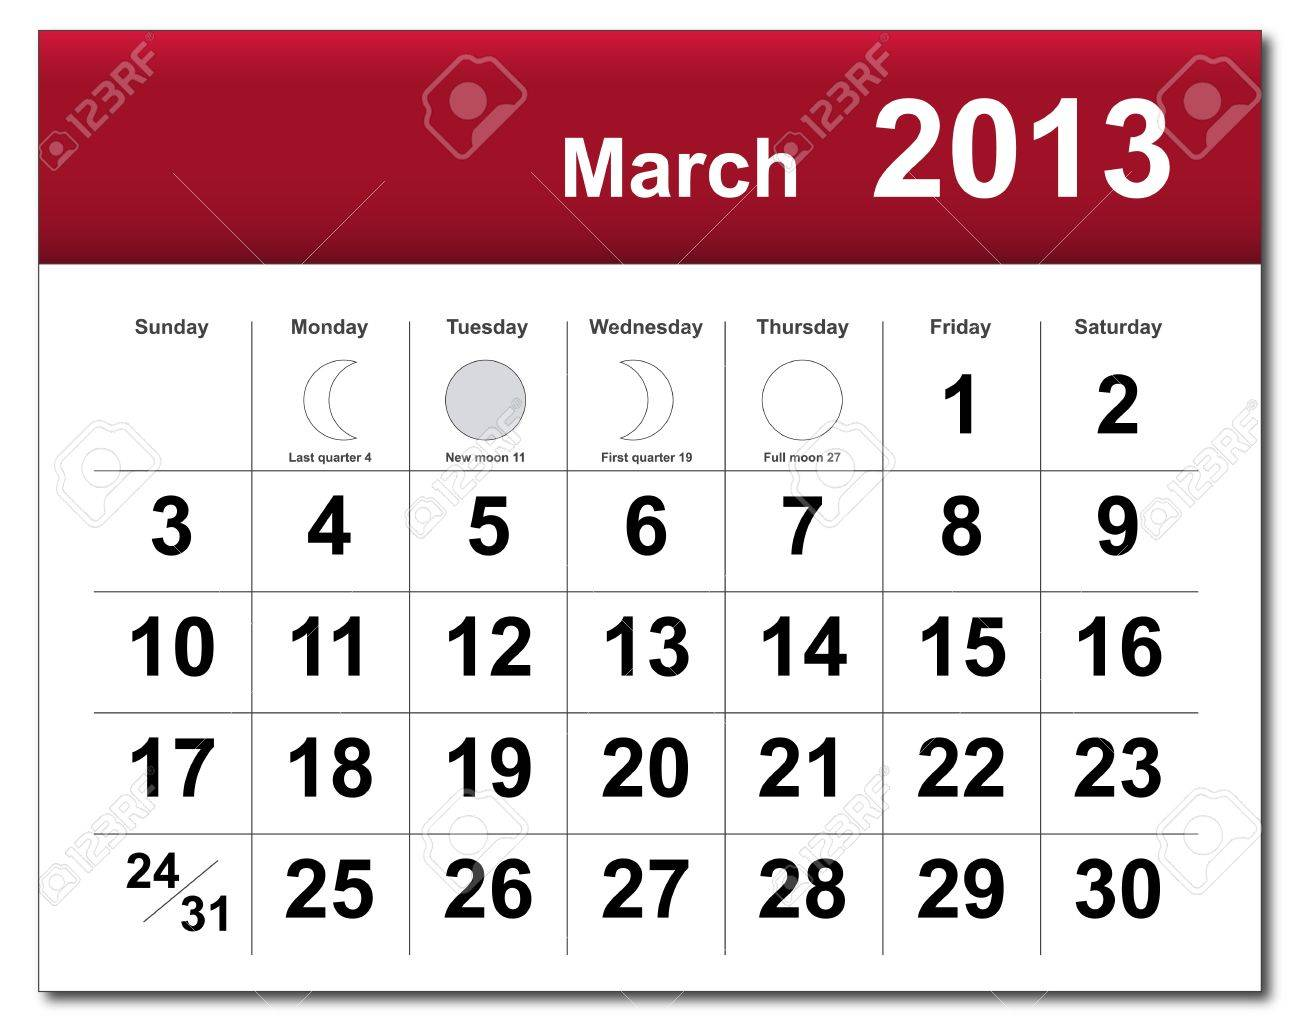 March 2013 calendar. Stock Vector - 14856361